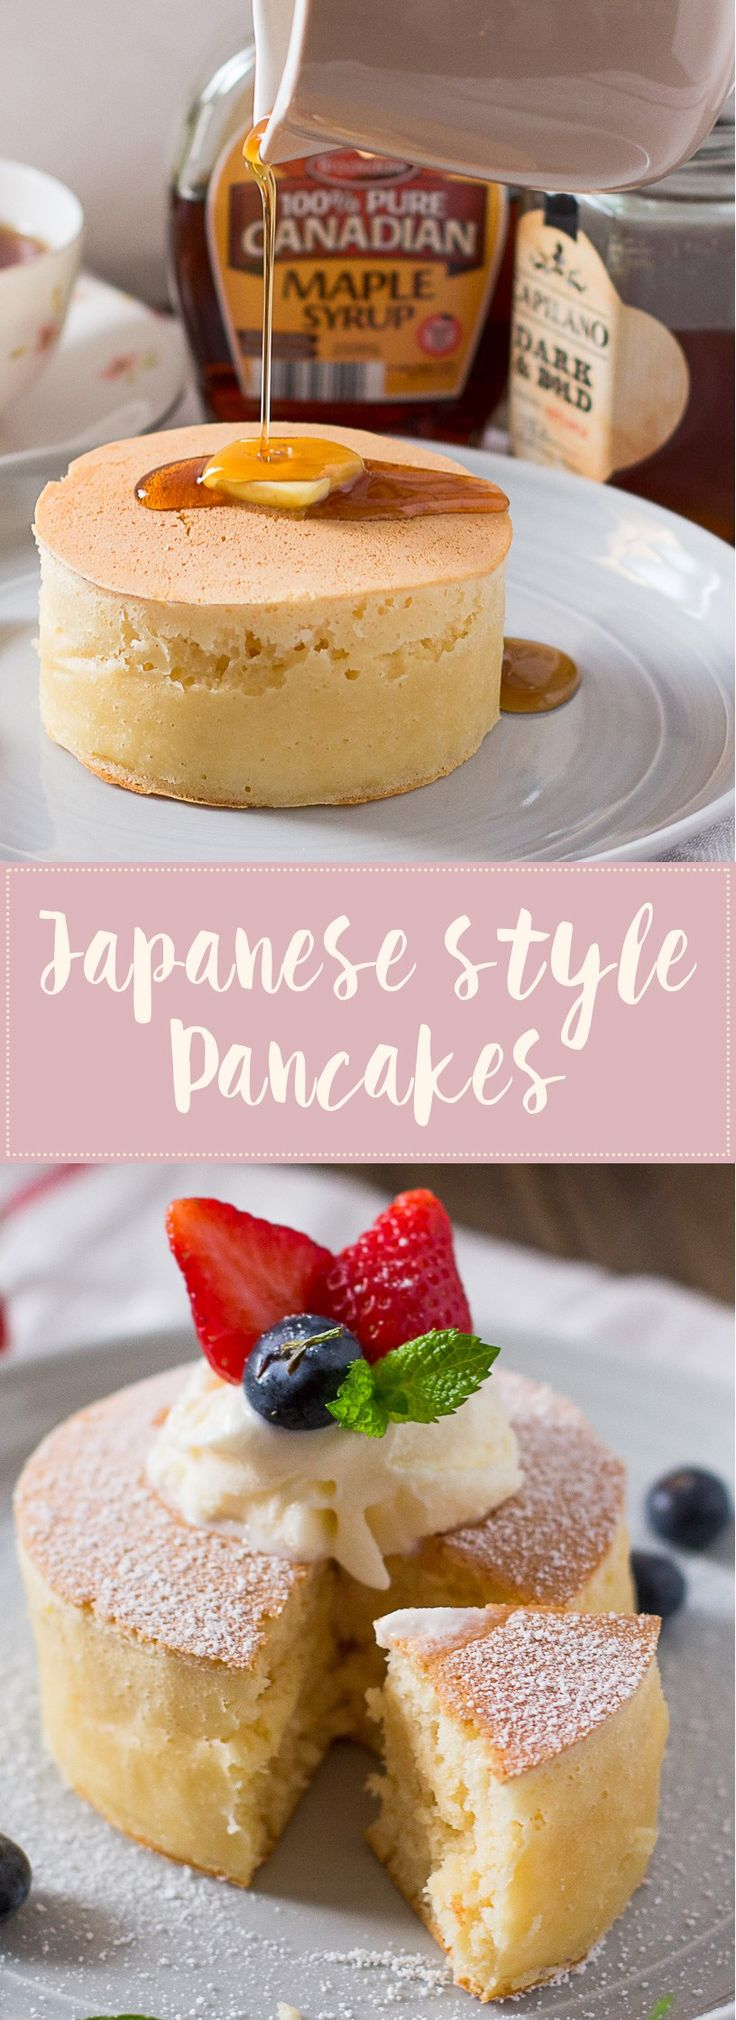 Japanese pancakes!!!! Amazing!!!!!!! Japanese style pancakes are extra thick, soft, moist, and fluffy!!! This  makes them extra delicious!! And easy to make!!!!!! Best Pancakes ever!!!!!